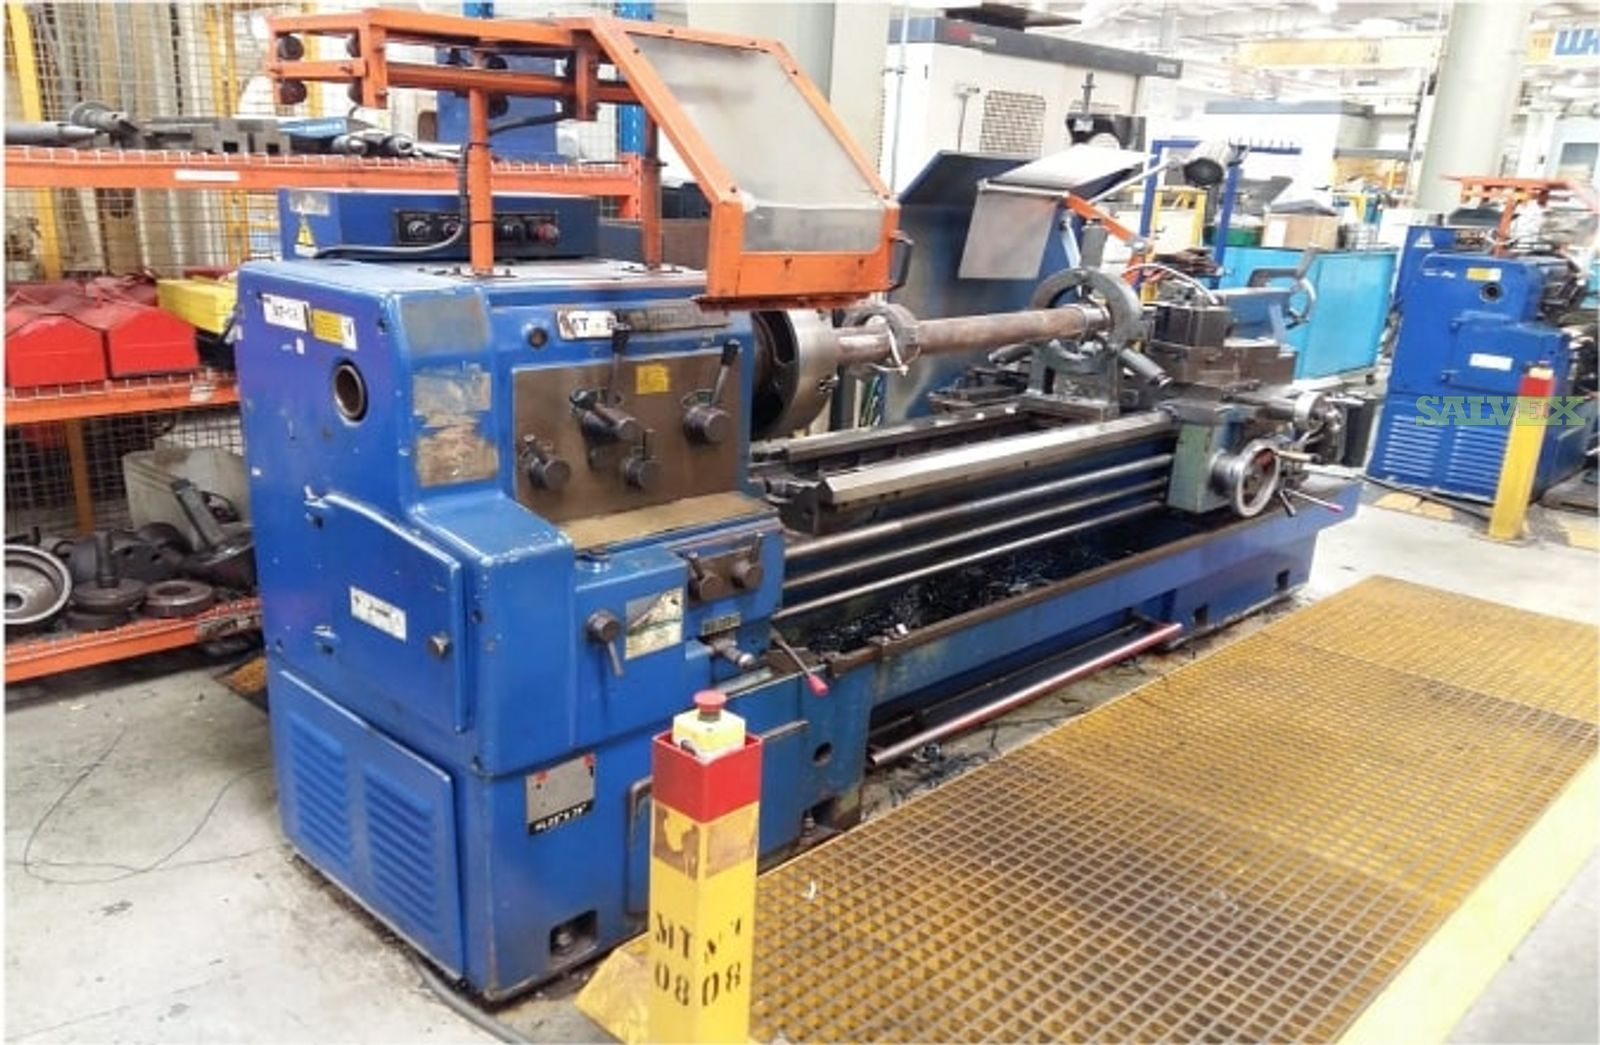 Machine Tools (CNC Lathes, Conveyor Testing, Pallet Systems, Others (16 Items)